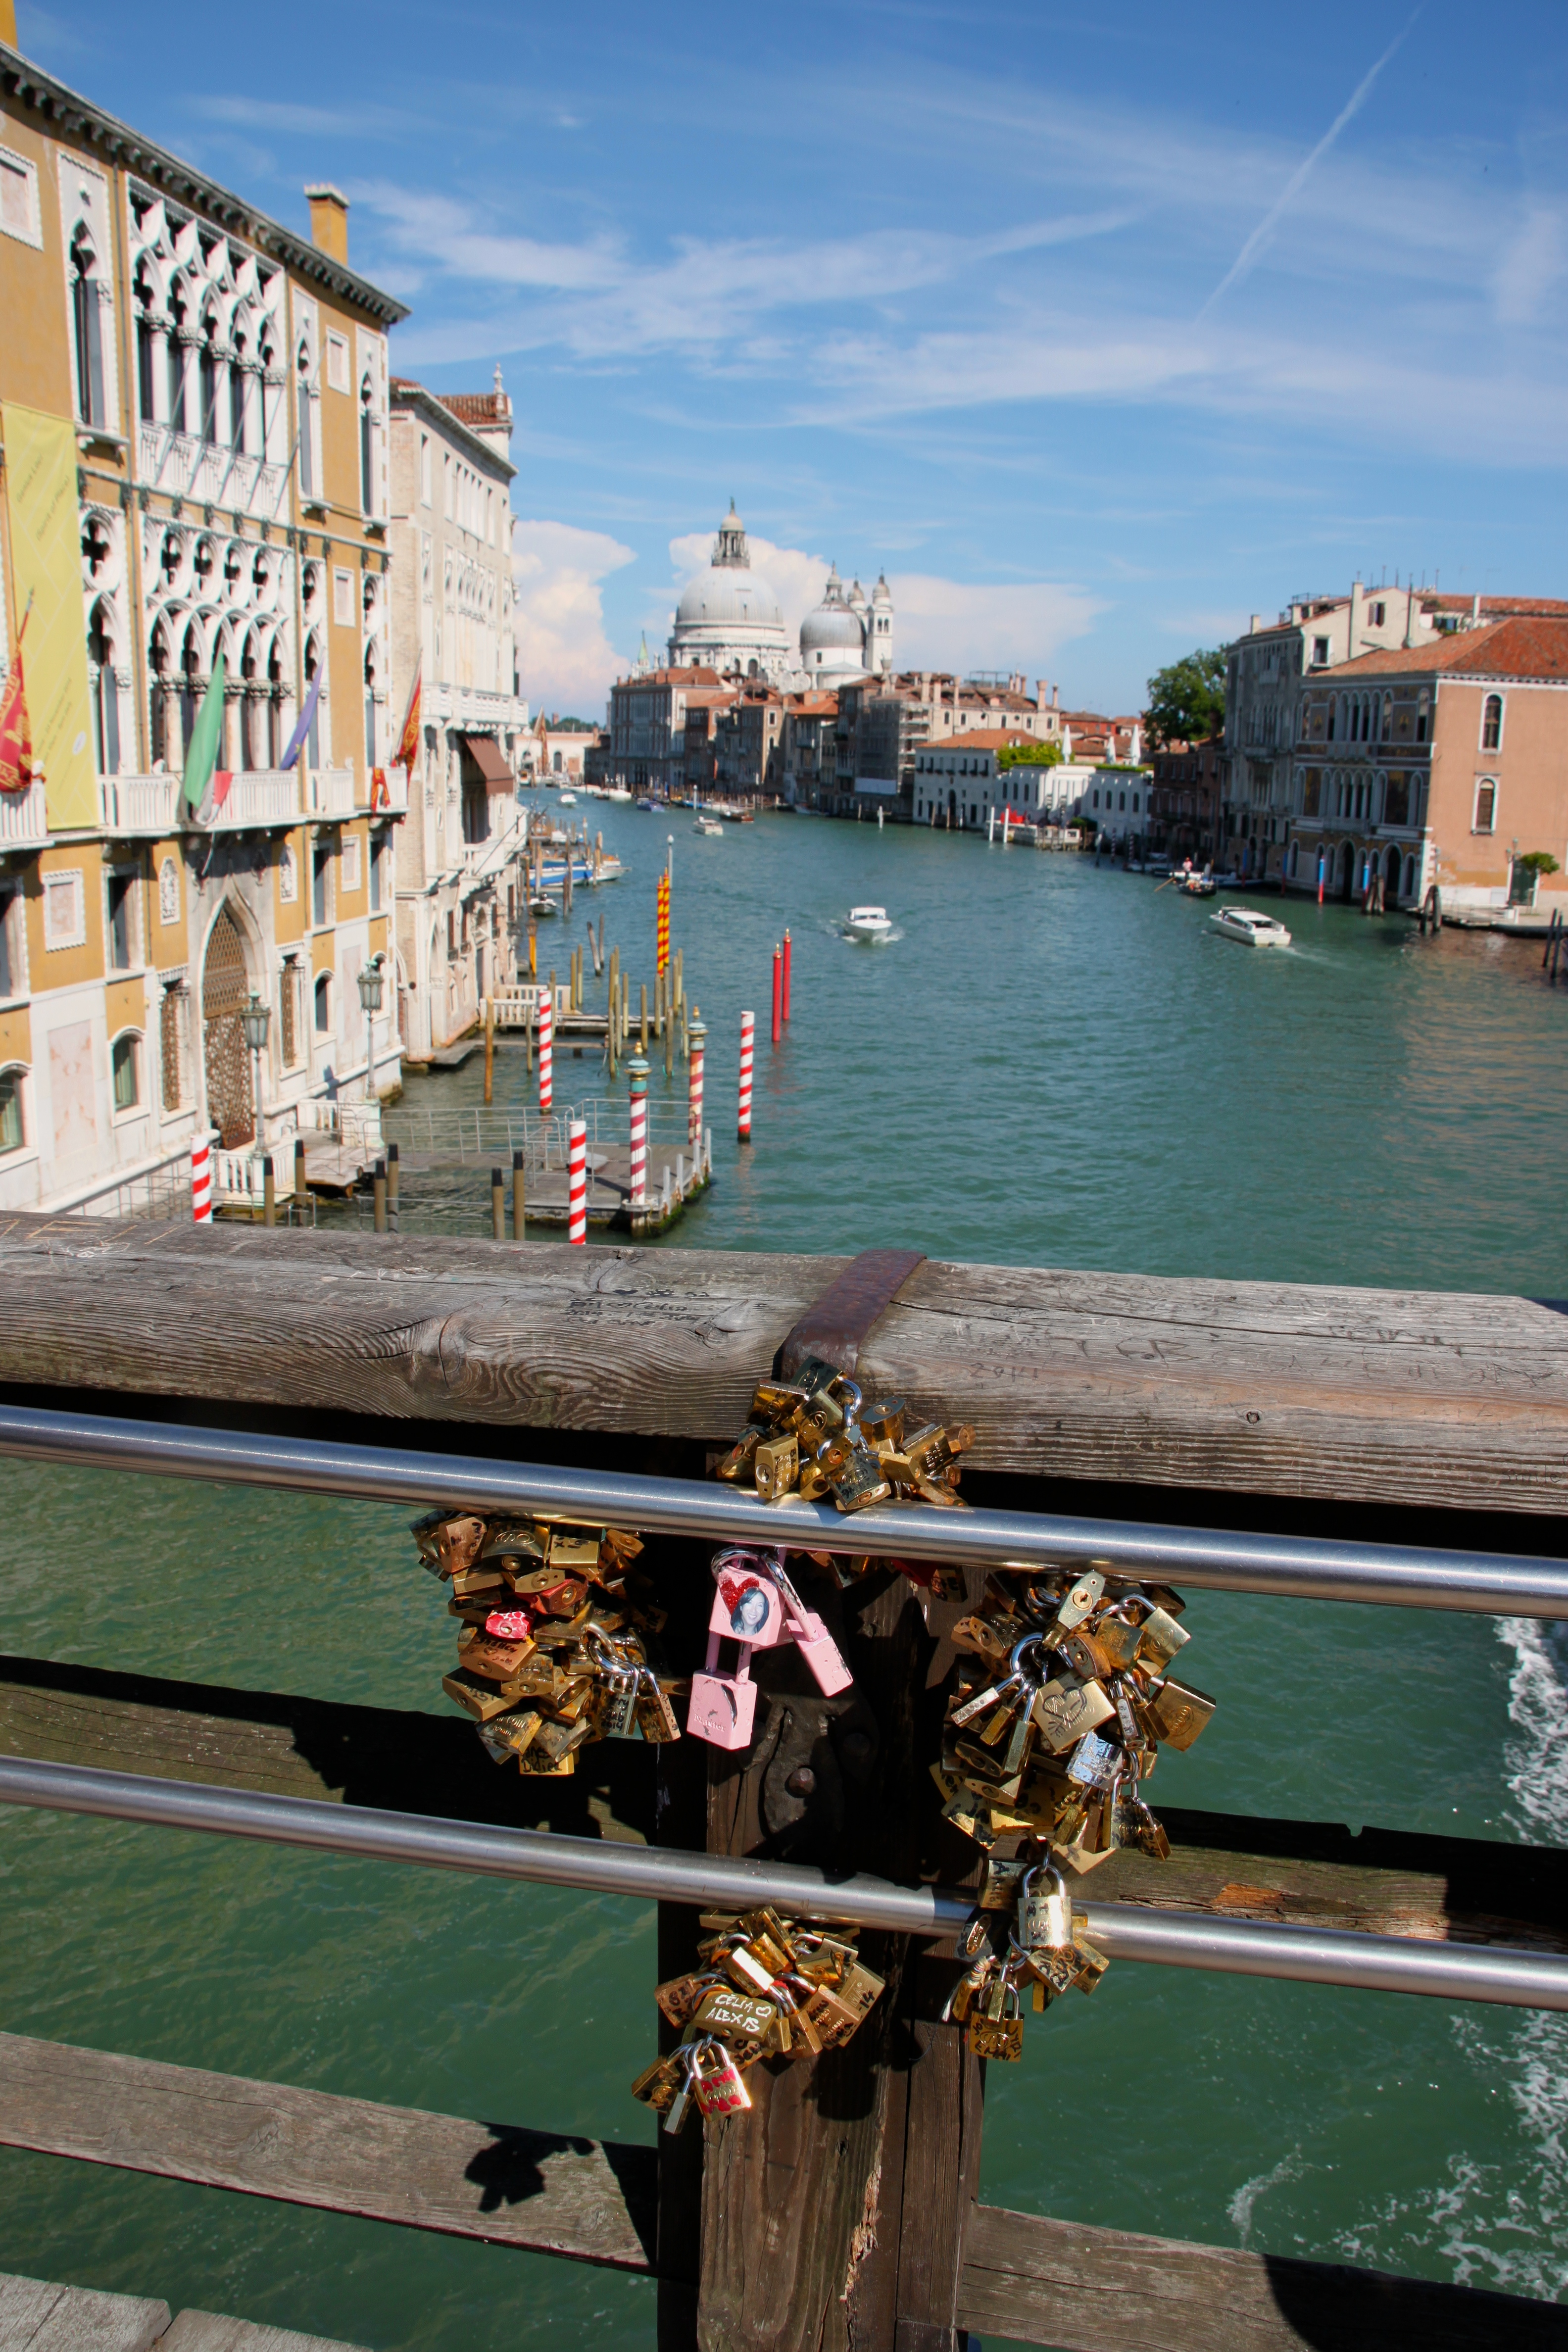 Lovelocks litter the wooden Accademia bridge spanning the Grand Canal, Venice